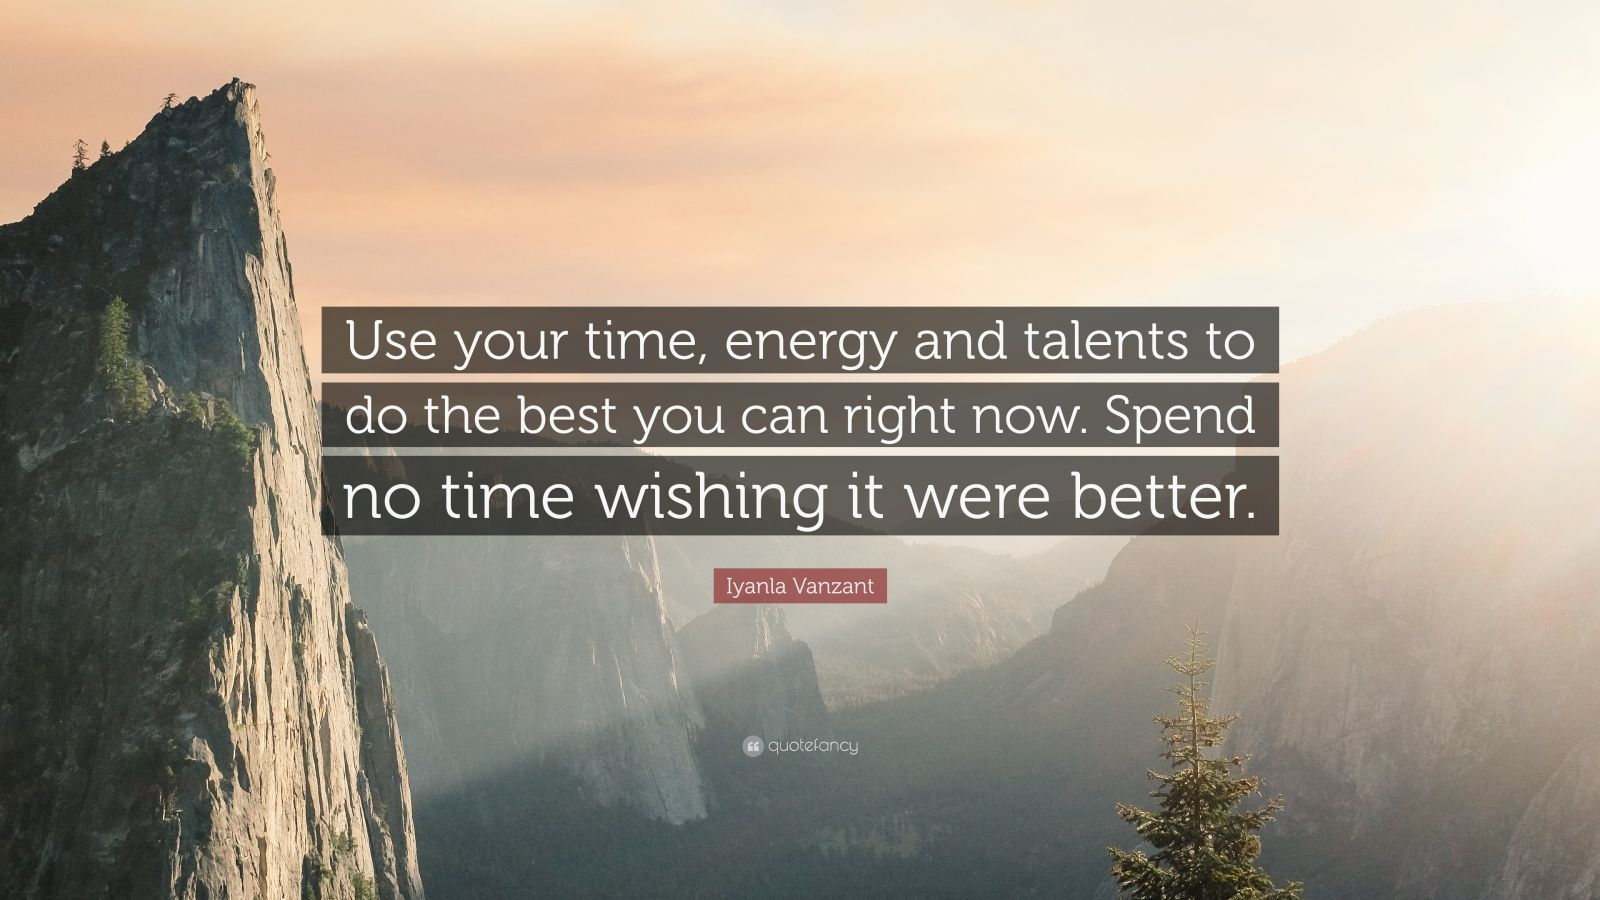 """Iyanla Vanzant Quote: """"Use your time, energy and talents to do the best you can right now. Spend no time wishing it were better."""""""